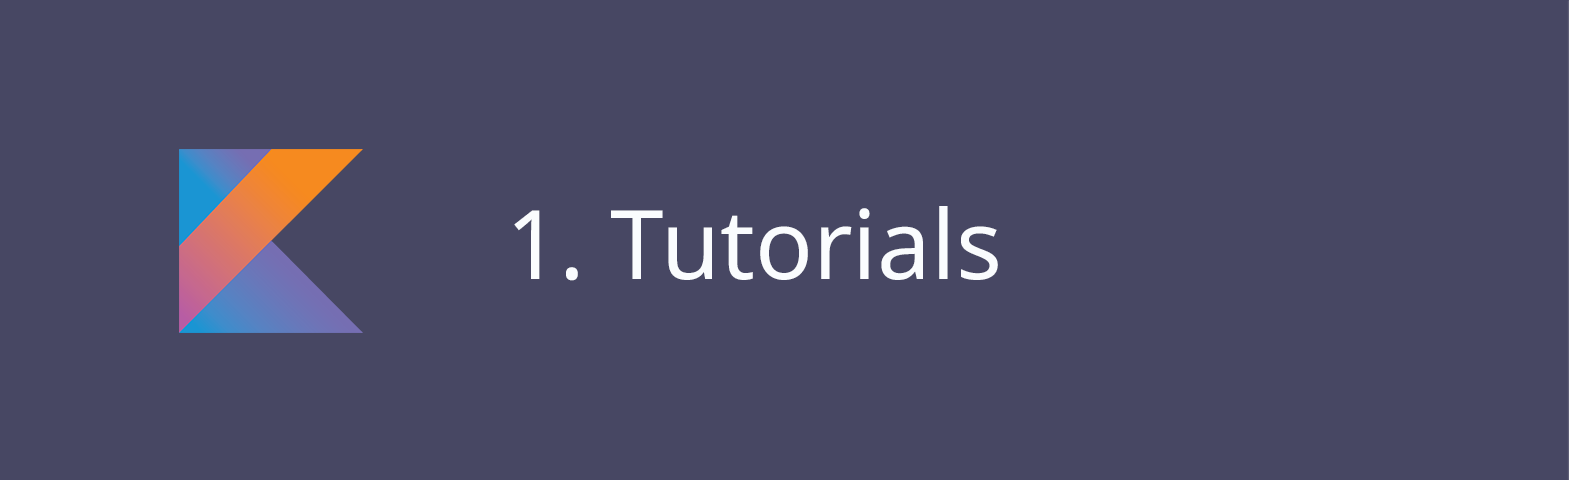 20 Excellent Resources for Learning Kotlin - Tutorialzine